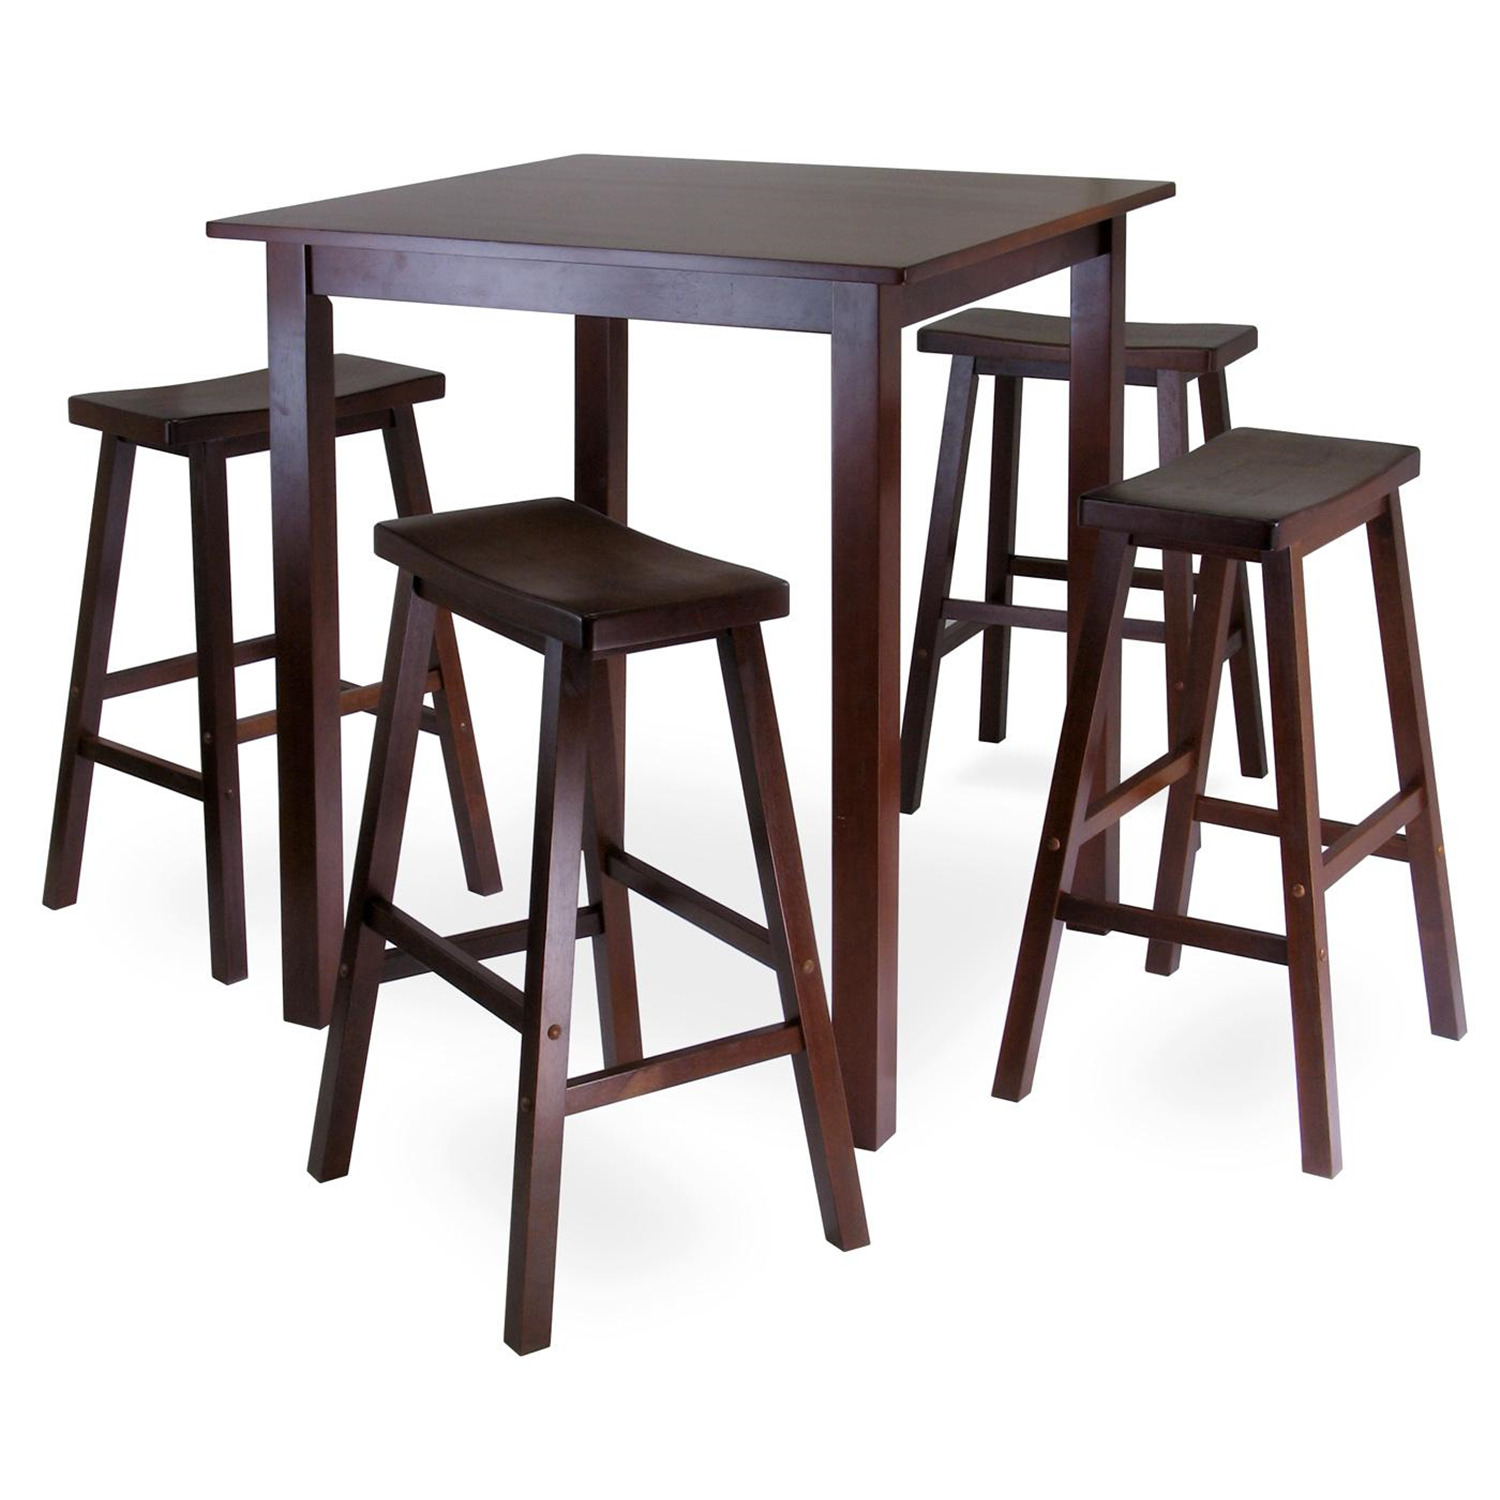 Bar Stools And Table Set Parkland 5pc Square High Pub Table Set With 4 Saddle Seat